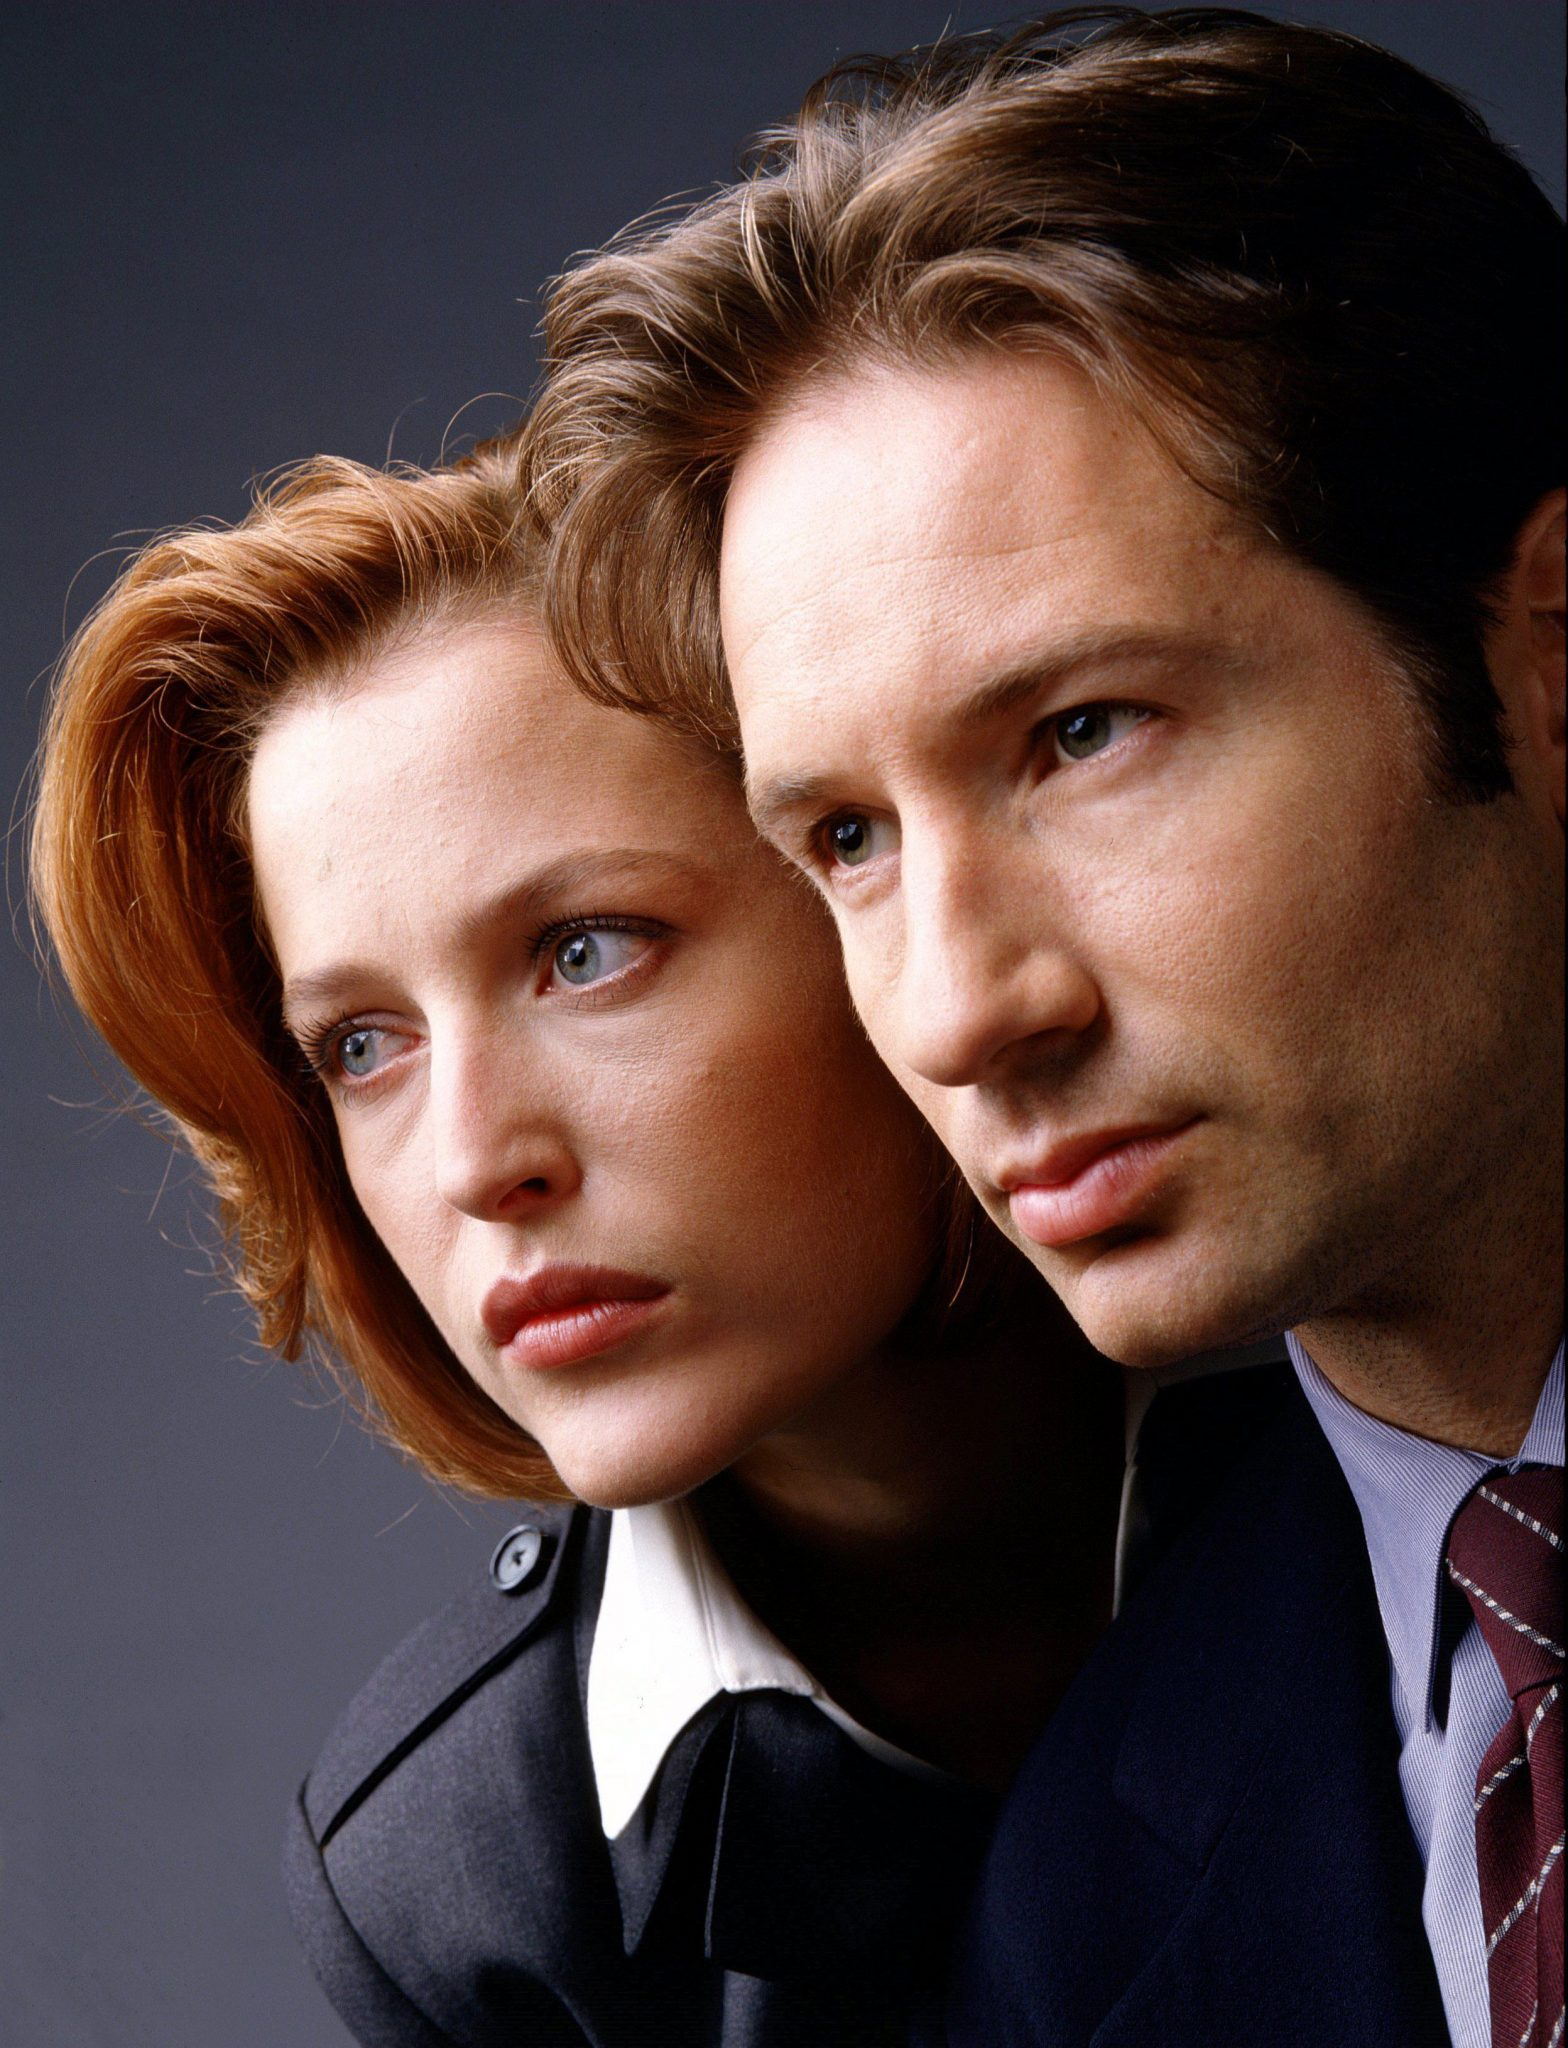 x-files-fight-the-future-david-duchovny-gillian-anderson-mulder-scully